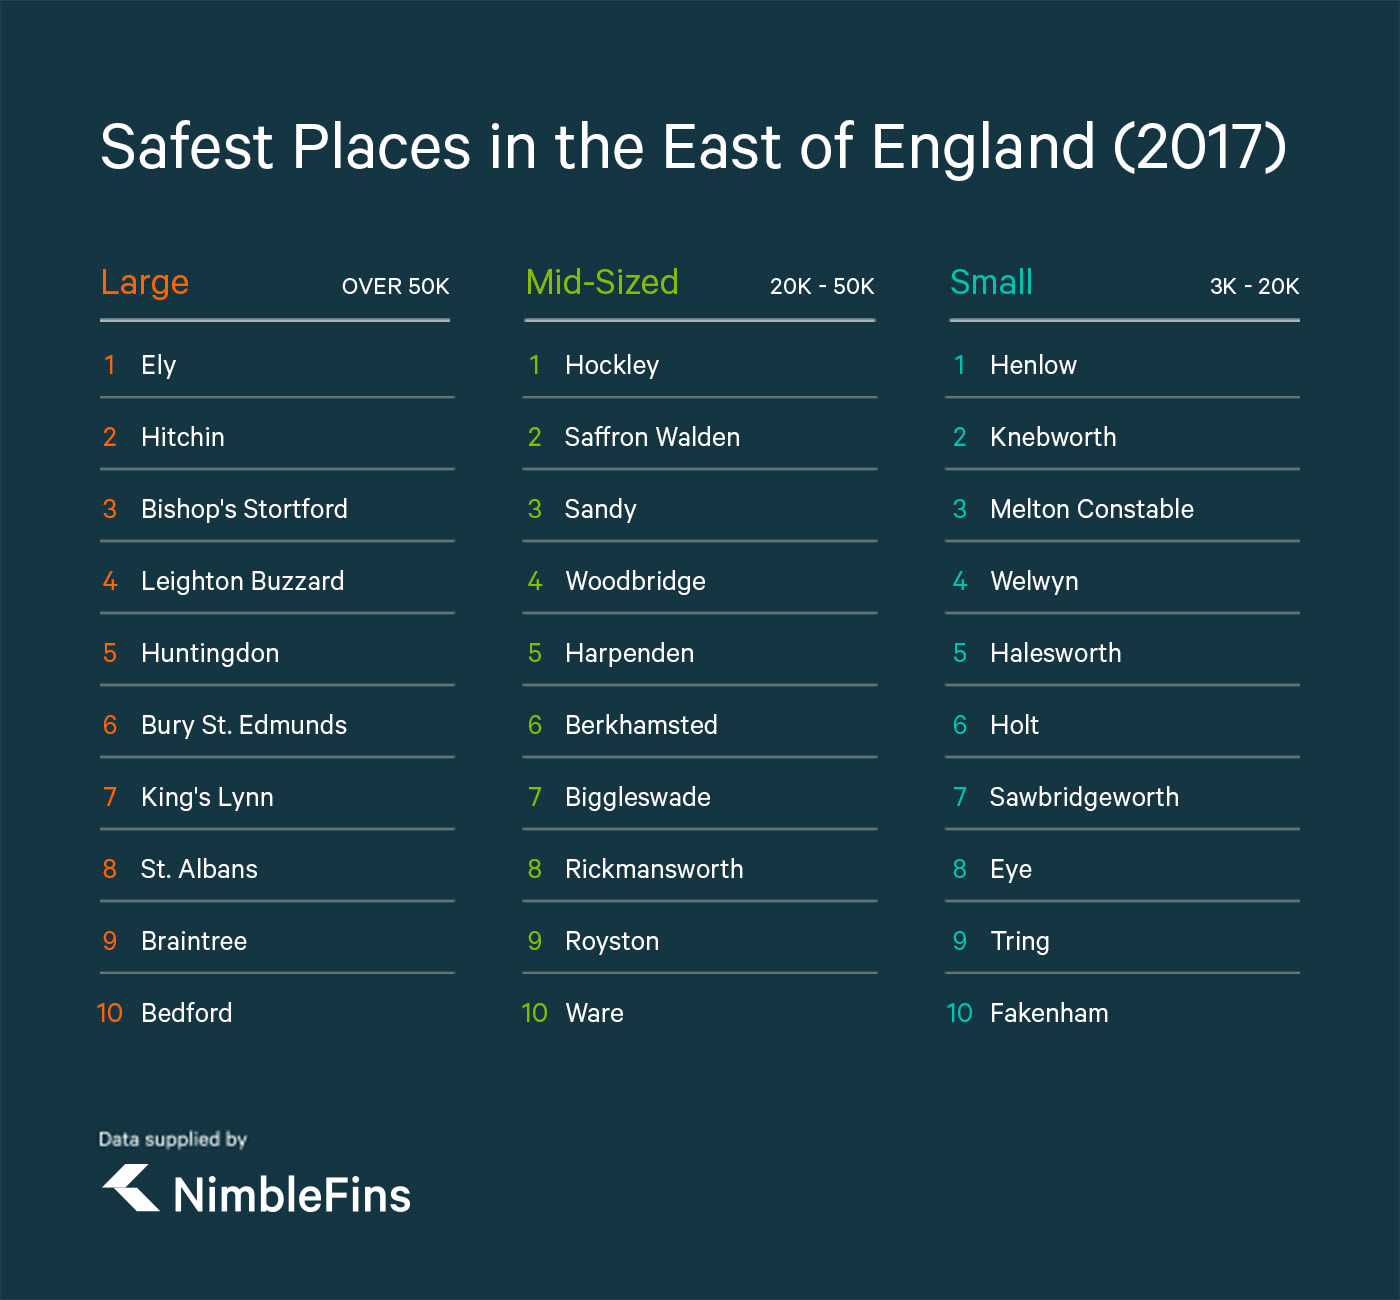 table showing safest towns in the East of England, UK, by small, medium and large towns